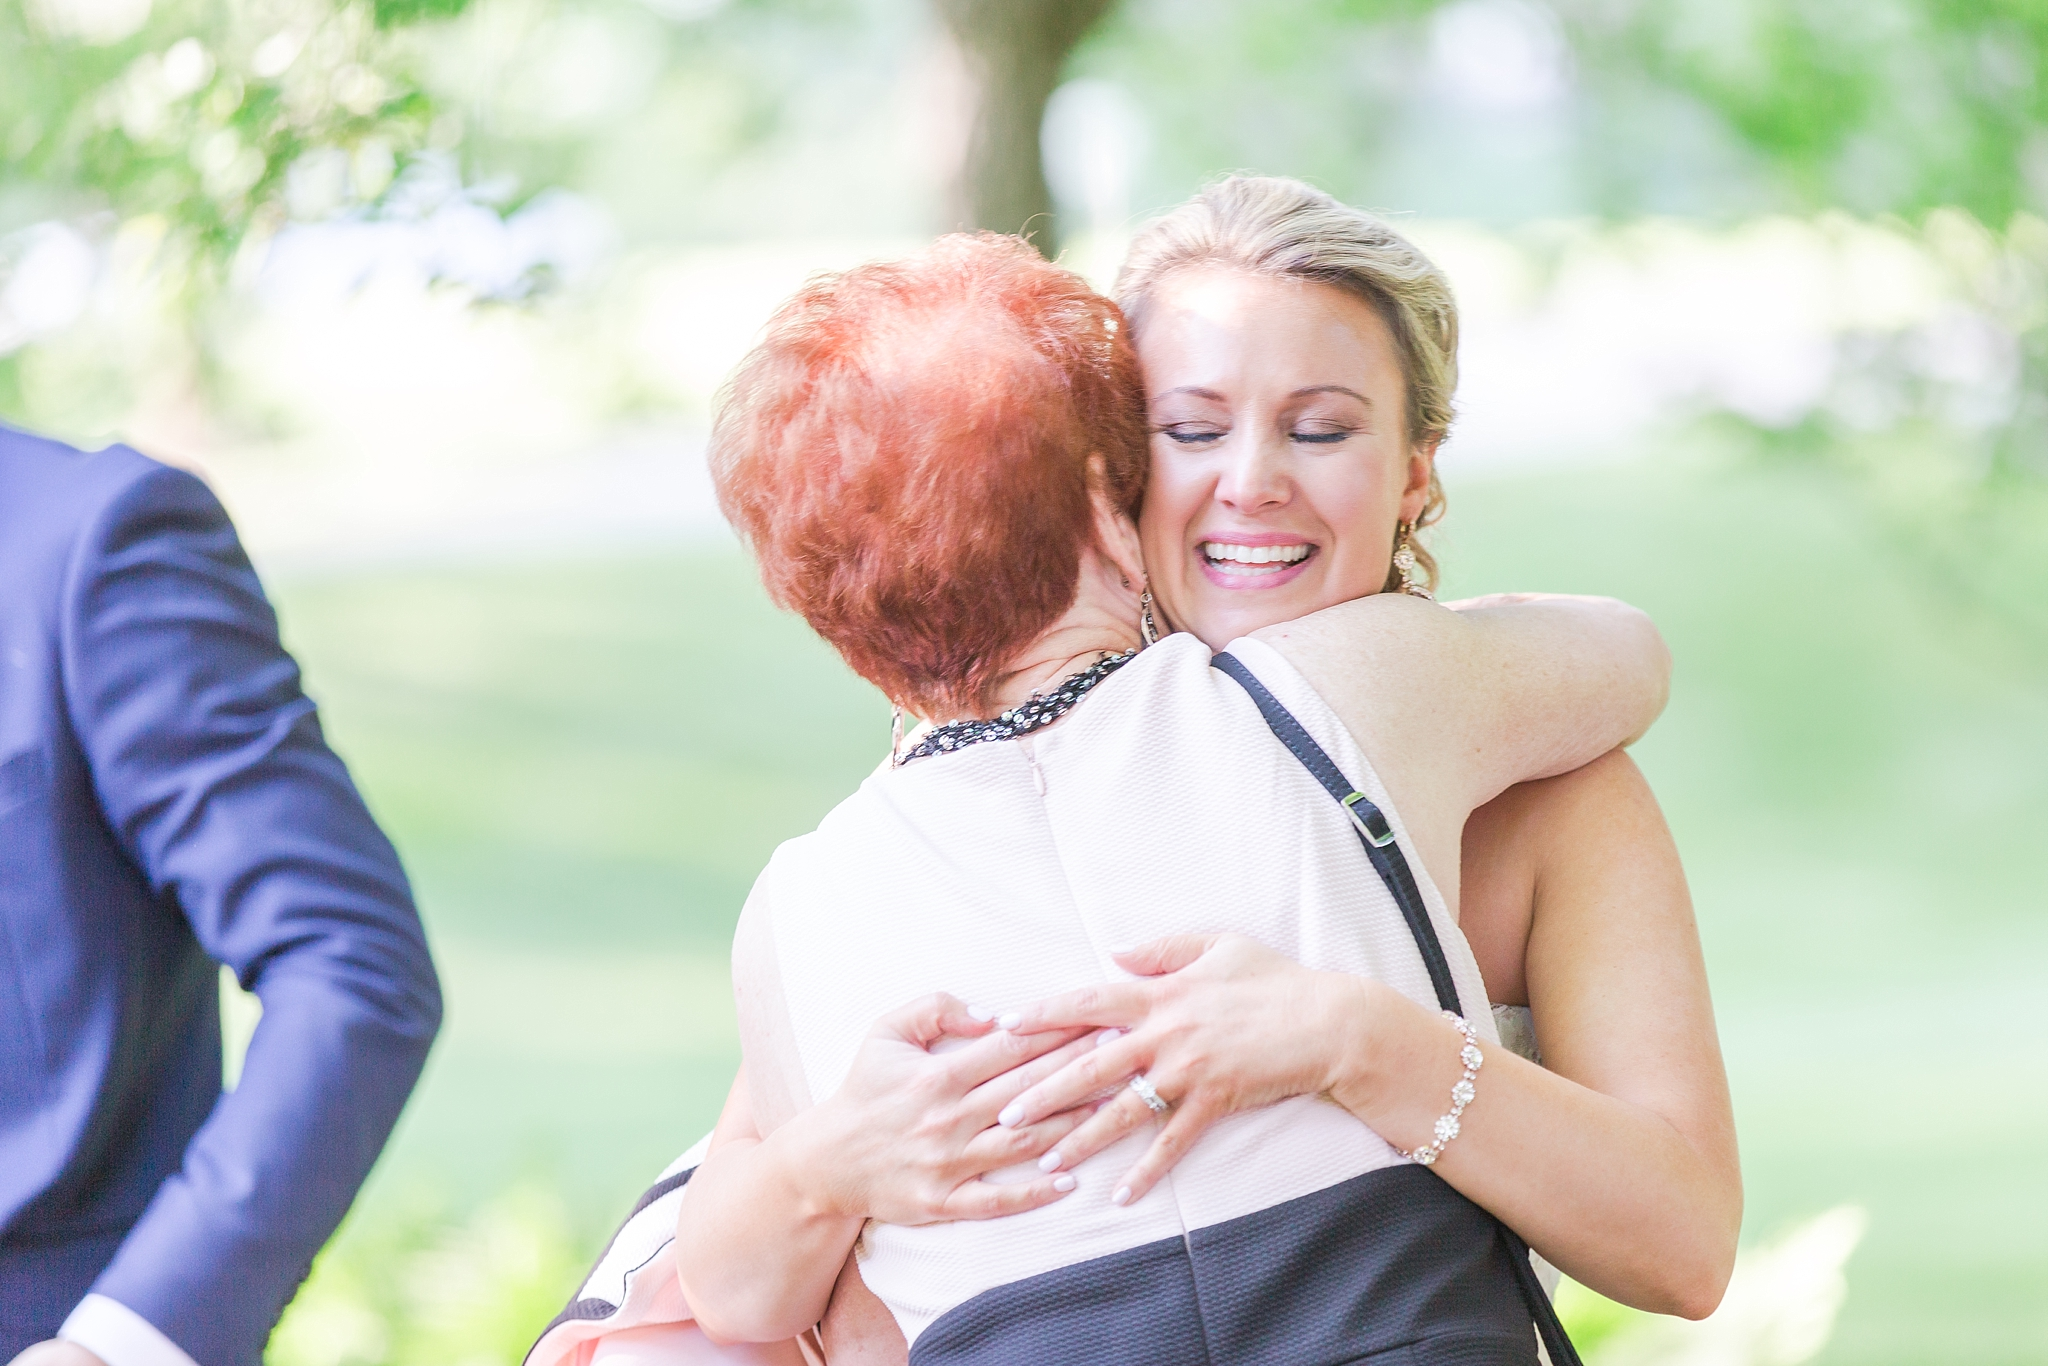 fun-candid-laid-back-wedding-photos-at-wellers-carriage-house-in-saline-michigan-and-at-the-eagle-crest-golf-resort-by-courtney-carolyn-photography_0075.jpg